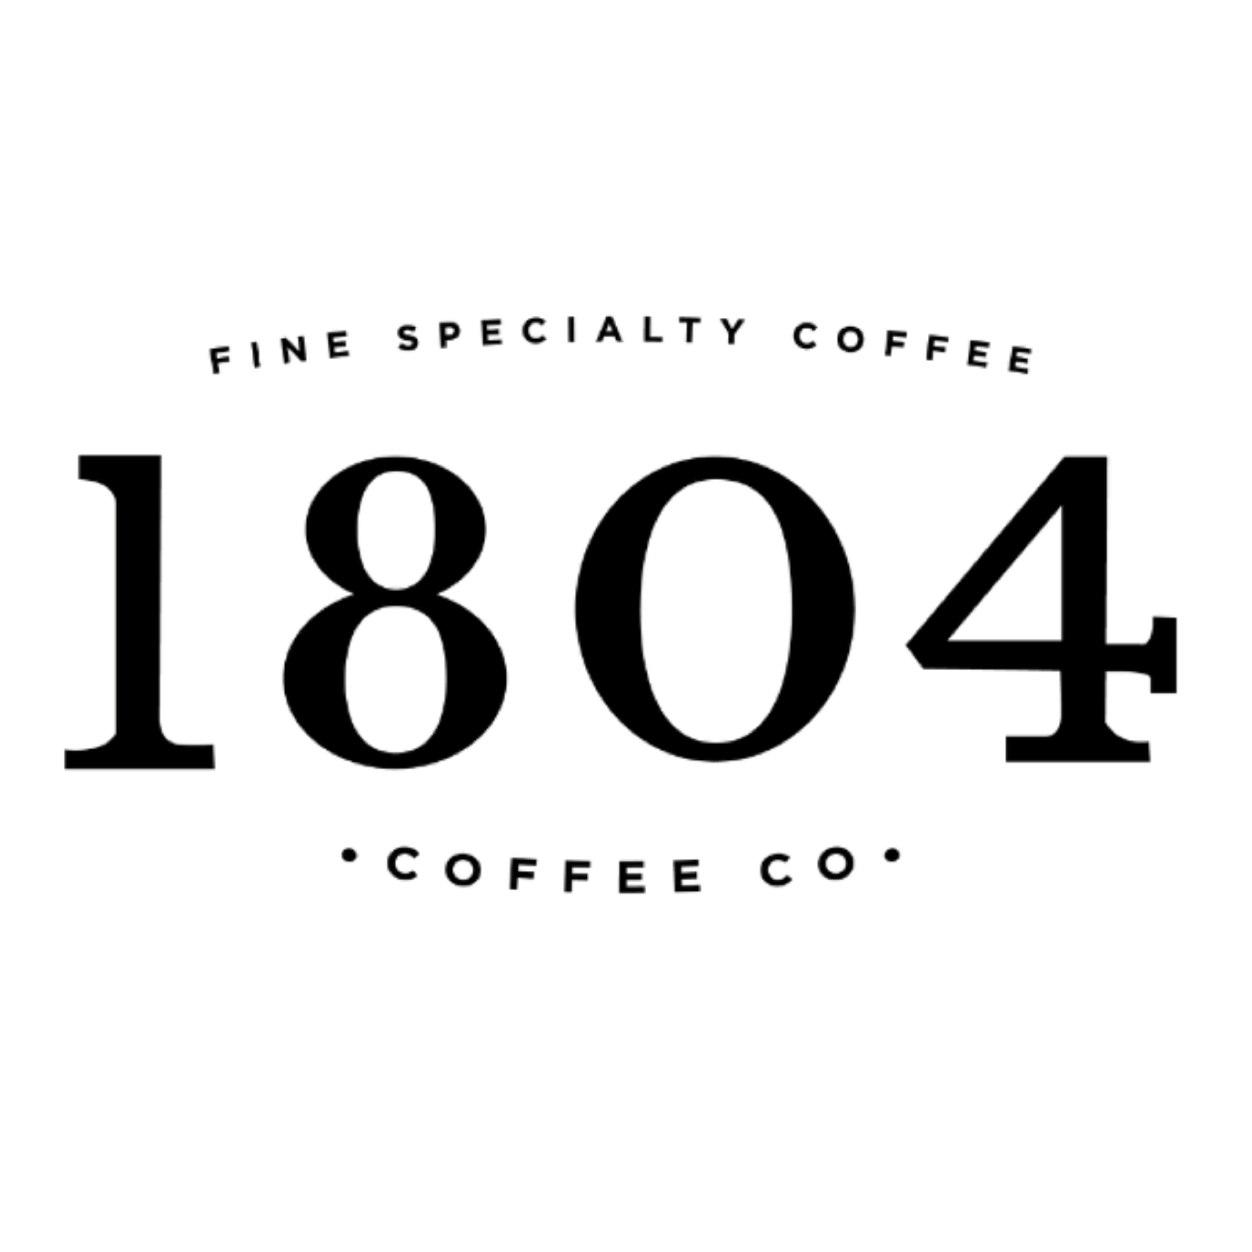 1804 Coffee Company